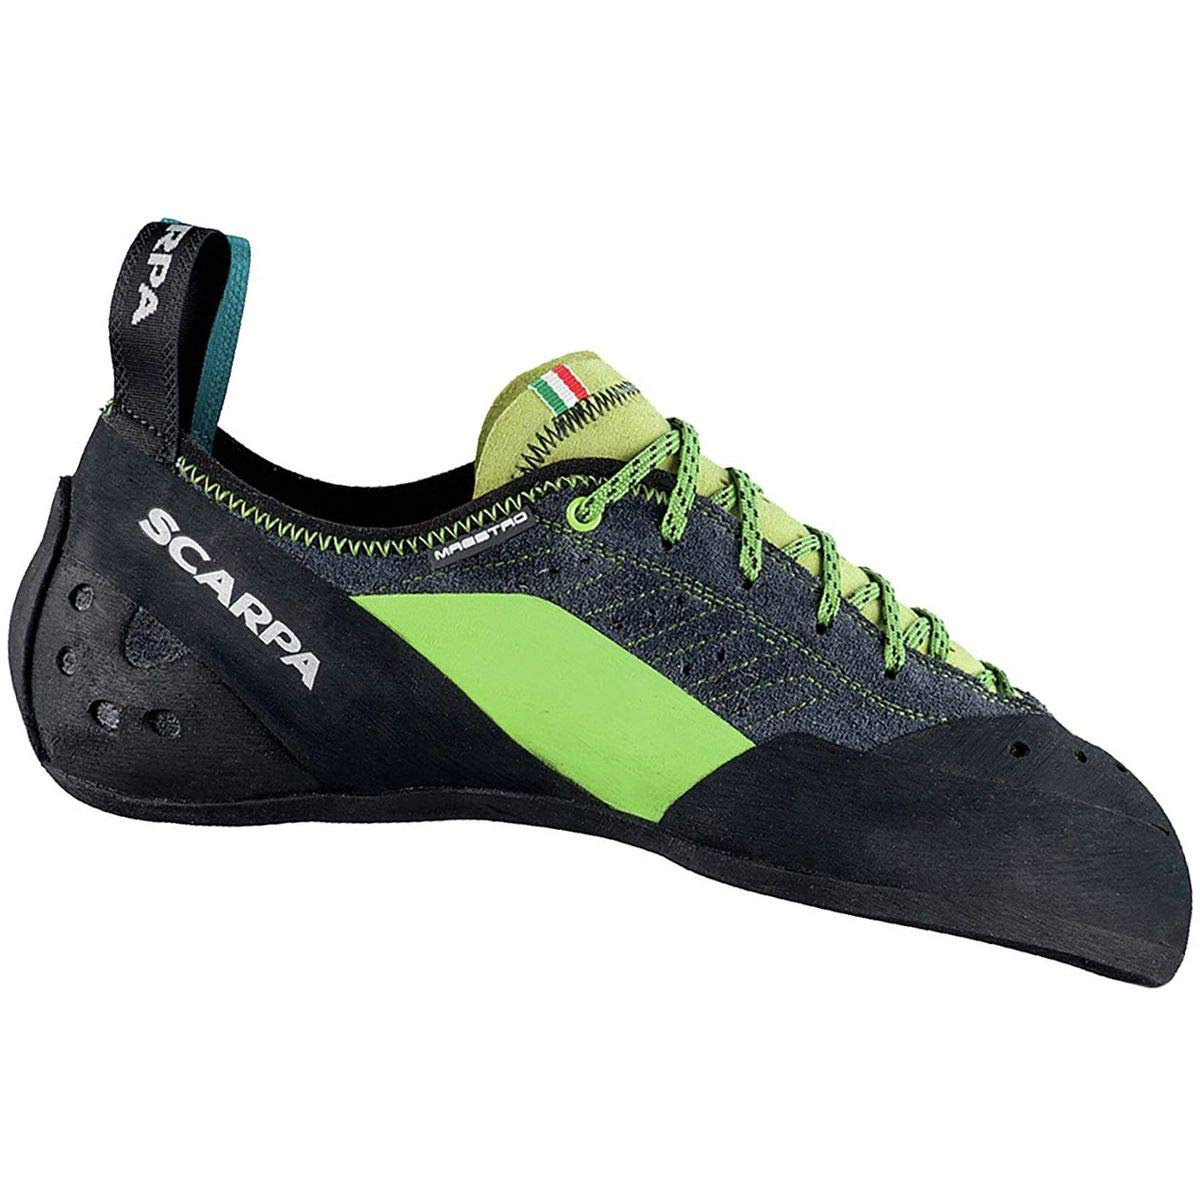 SCARPA Maestro Climbing Shoe - Men's 70097/001-Ink-39.5